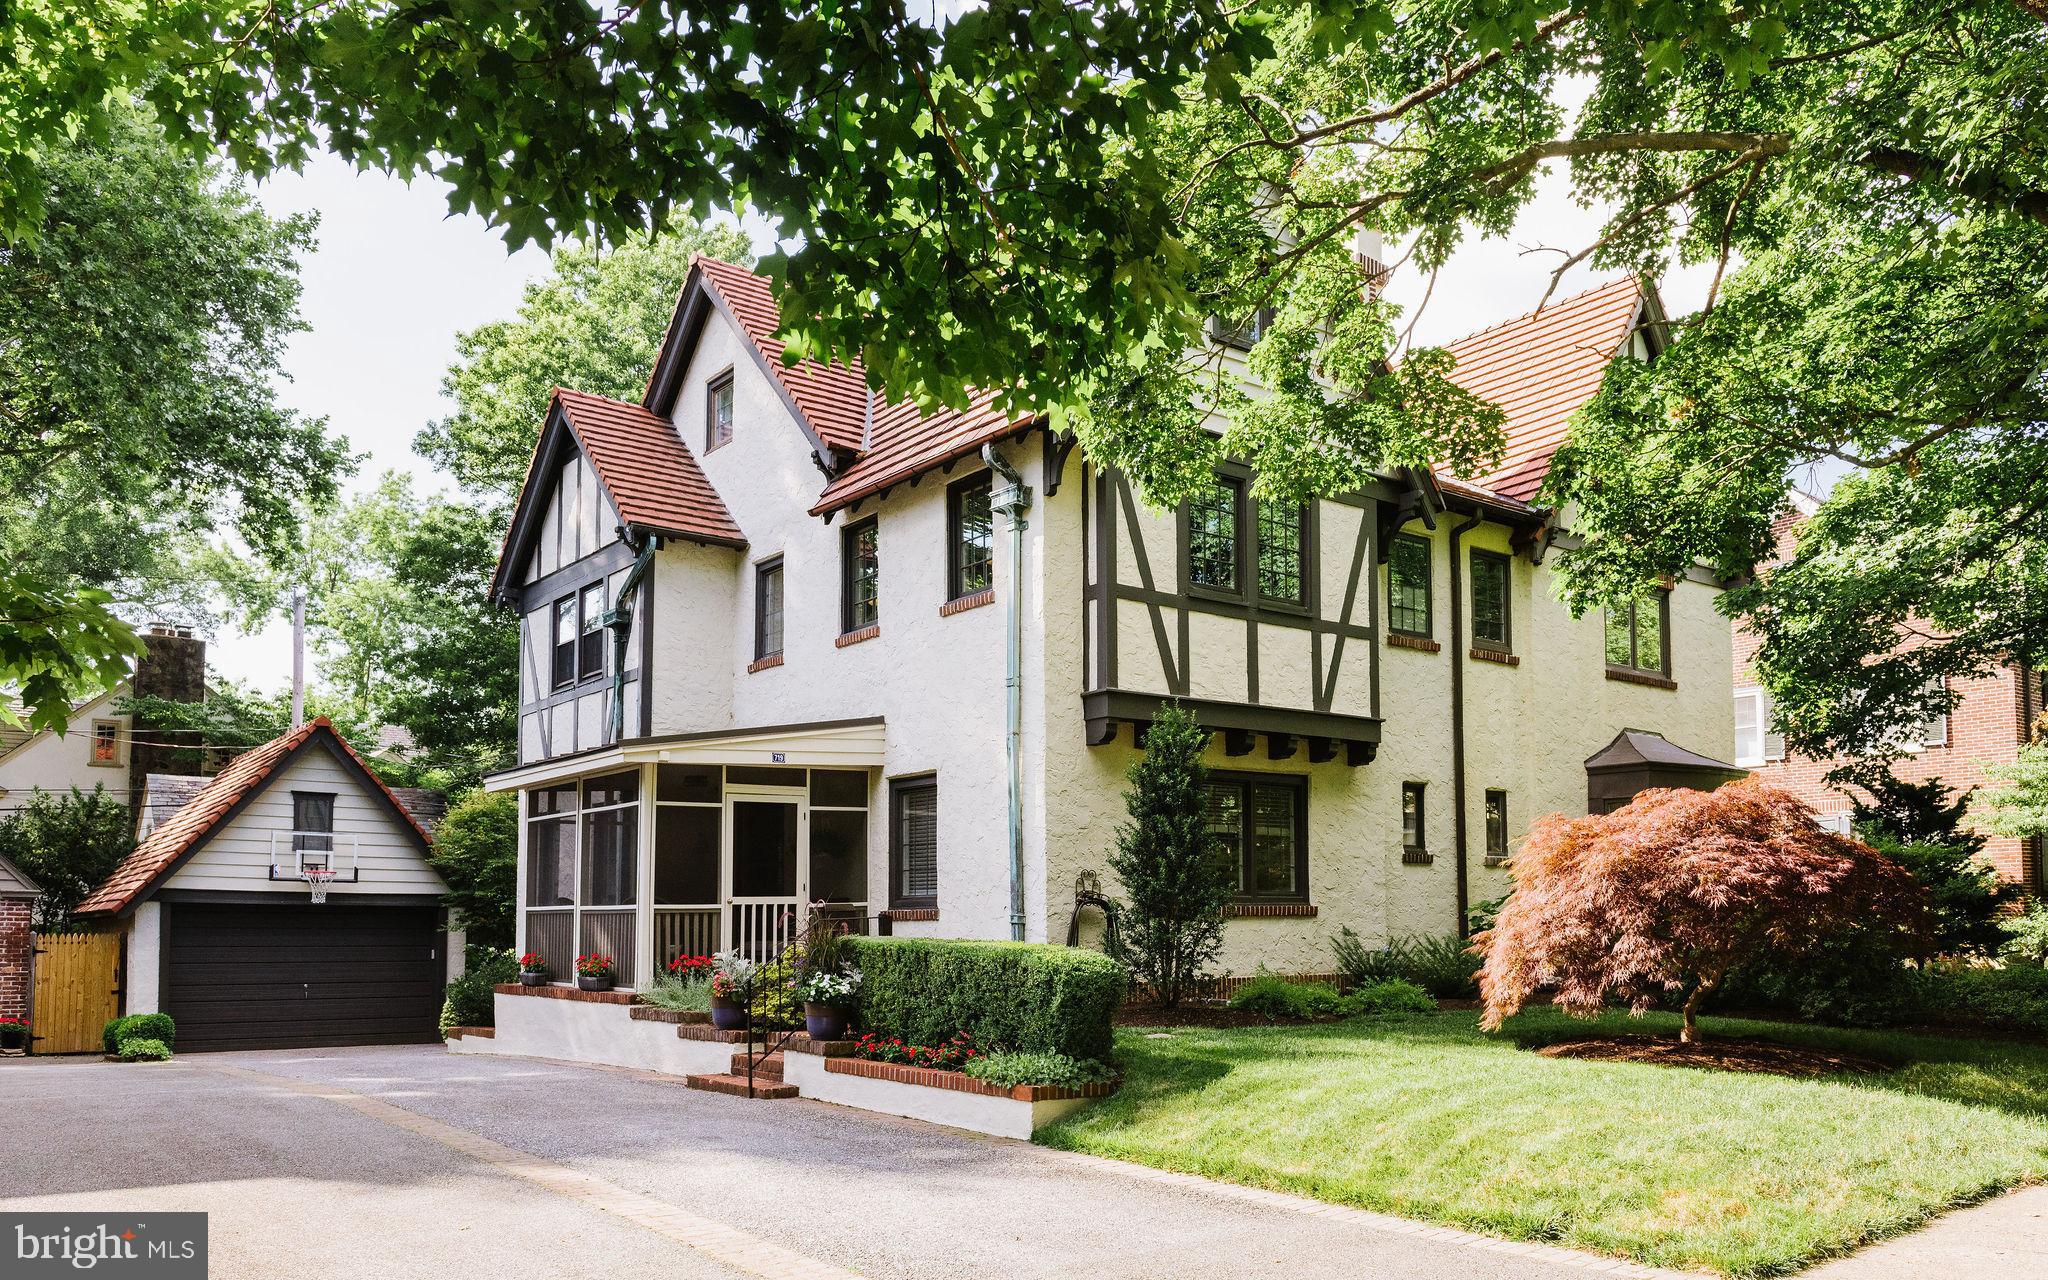 Nestled in highly desirable and historic Wawaset Park, this alluring architectural treasure awaits. Straight out of a fairytale, this storybook Tudor home is characterized by its steeply pitched gable roofs, elaborate masonry chimney, and decorative half-timbering. These details, along with terra cotta roof tiles and copper gutters combine to present an offering of quality, charm and character that can't be replicated today. A Japanese Maple, abundant plantings, and mature trees only enhance the beauty of the facade. Down a brick pathway, one approaches the main entry through a screened-in porch. The gracious foyer is flanked by two architectural arches, leading to the living and formal dining room. Anchored by a brick fireplace and built-ins, the living room presents a stunning coffered ceiling. Both the living and dining rooms have large windows that wrap around 3 sides of this home providing early morning brightness and golden hour calm. The eat-in kitchen boasts a neutral palette, with Jenn-Air stainless appliances, coffee station, and wine fridge. The combination of the cabinets, countertop finishes, and backsplash create a cohesive space. The kitchen windows overlook an exceptional rear yard reminiscent of an English courtyard with a private space to enjoy al-fresco dining and a large outdoor living room area. Fully fenced and with total privacy, the colorful plantings and fountain feature, complete this oasis that is the envy of all your neighbors. Back inside, the second floor has three bedrooms including an owner's suite with walk-in closet, marble bath, custom built-ins, and pedestal sink. There is a shared hall bath and linen closet finishing off this floor.  Up on the third floor, tucked into the roof eaves, there are two spacious bedrooms, hallway built-ins, multiple closets, and a full hall bath with clawfoot tub. The full basement is unfinished and provides great storage, as does the 1.5 car garage with remote entry. Stylishly embellished and impeccab